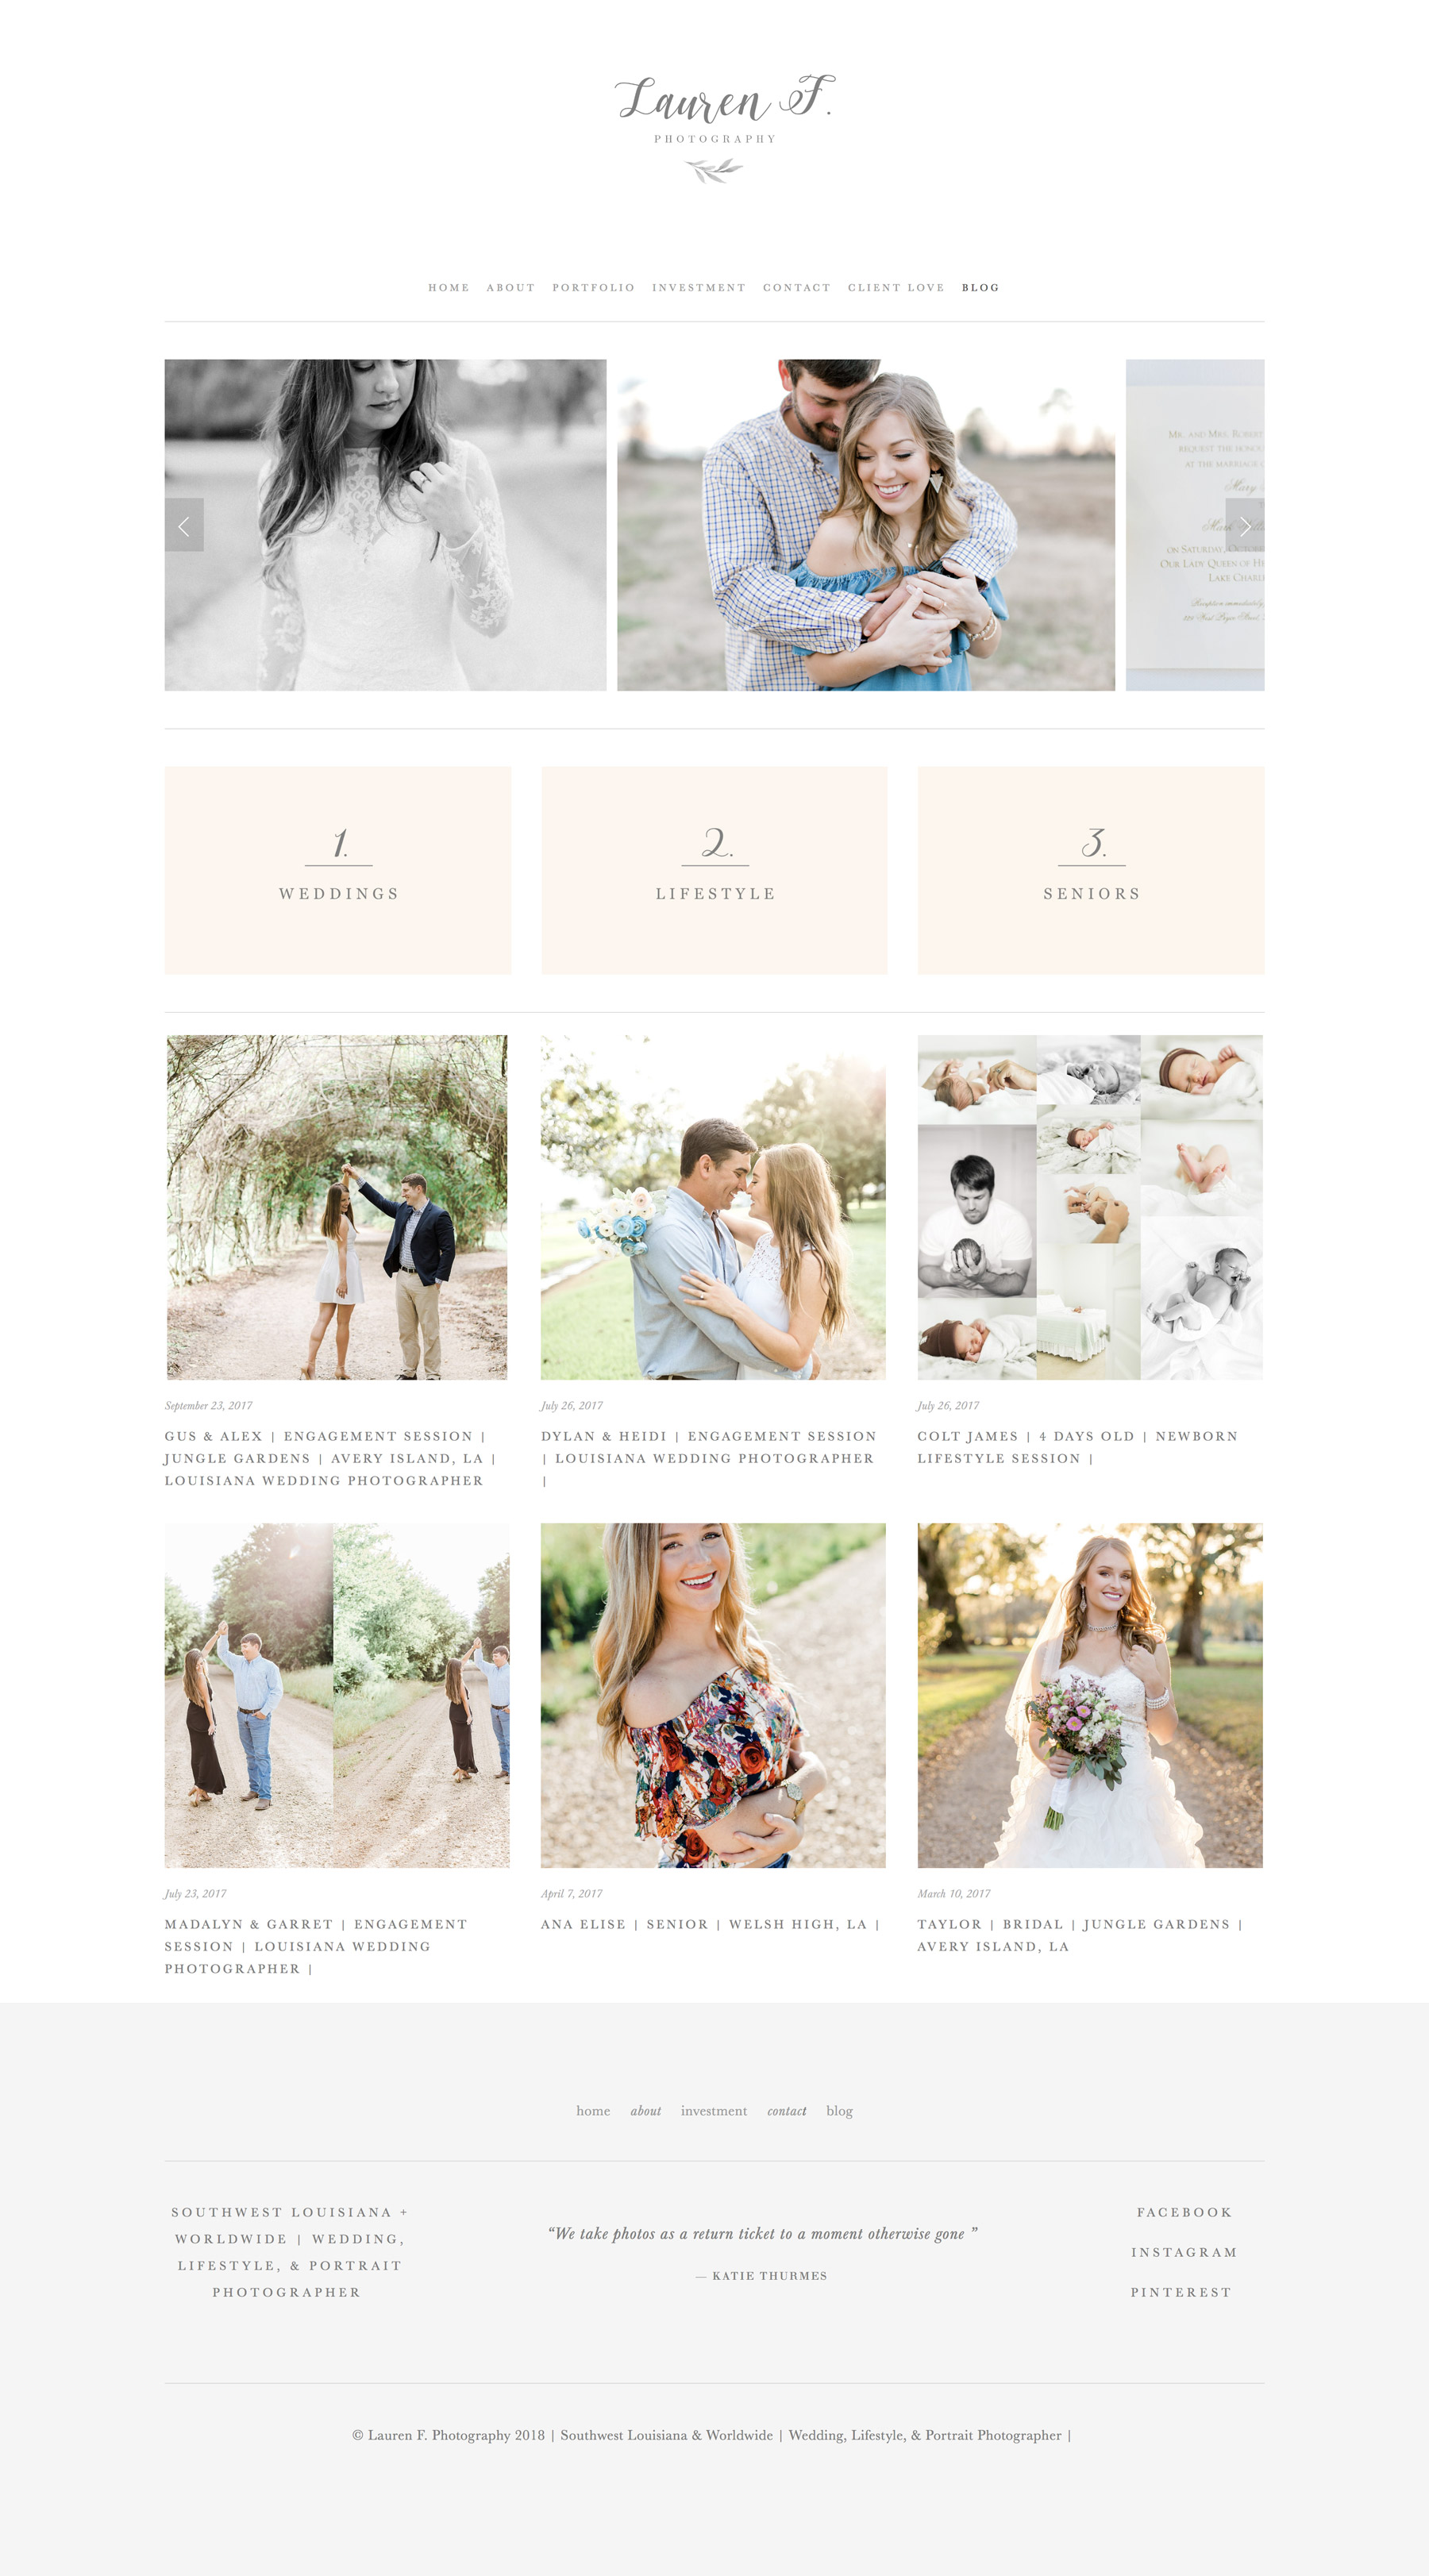 squarespace-website-design-templates-2.jpg